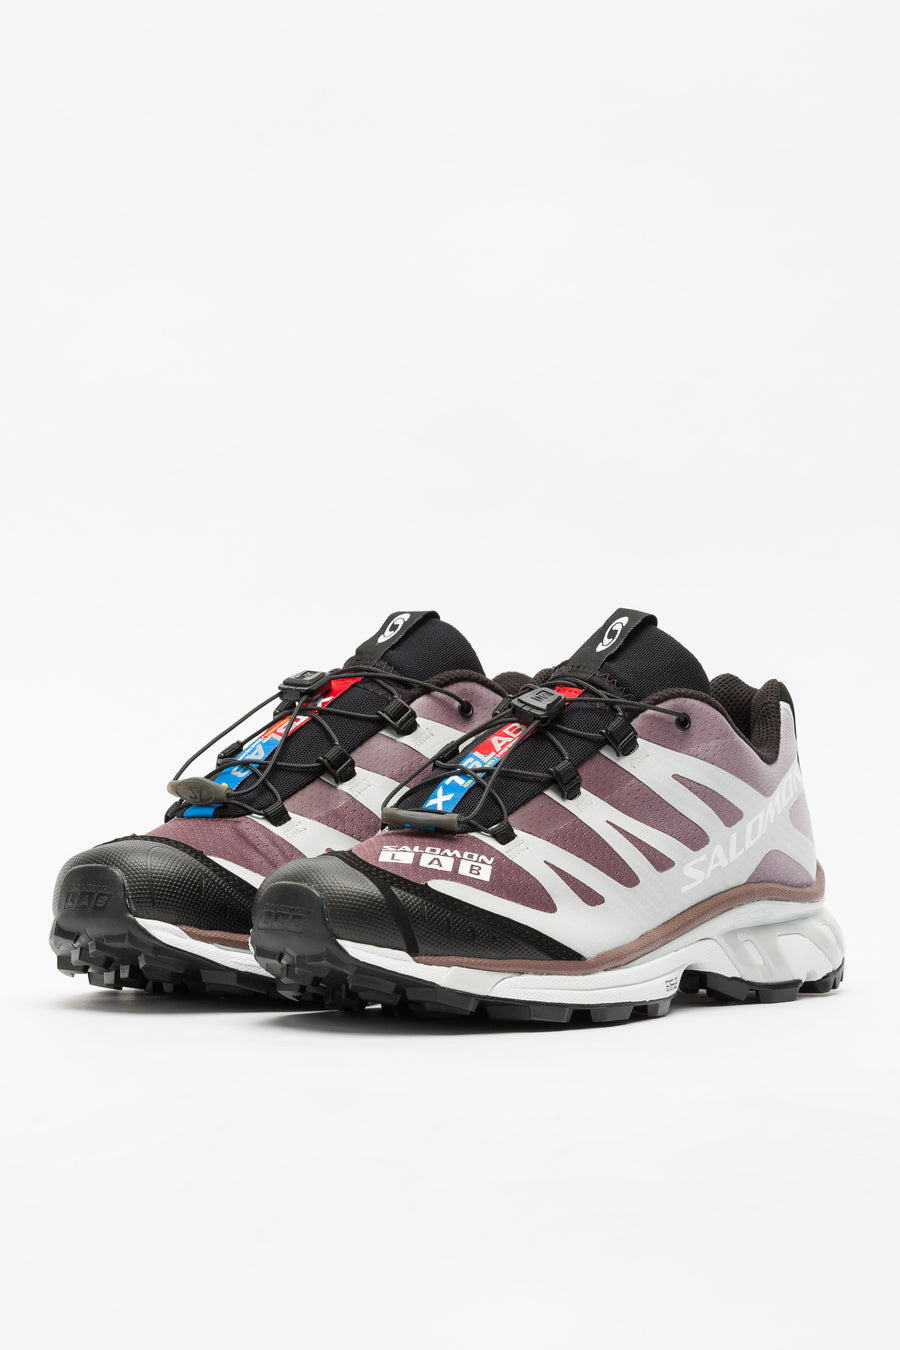 SALOMON S/LAB XT-4 ADV in Pearl Blue/Peppercorn - Notre